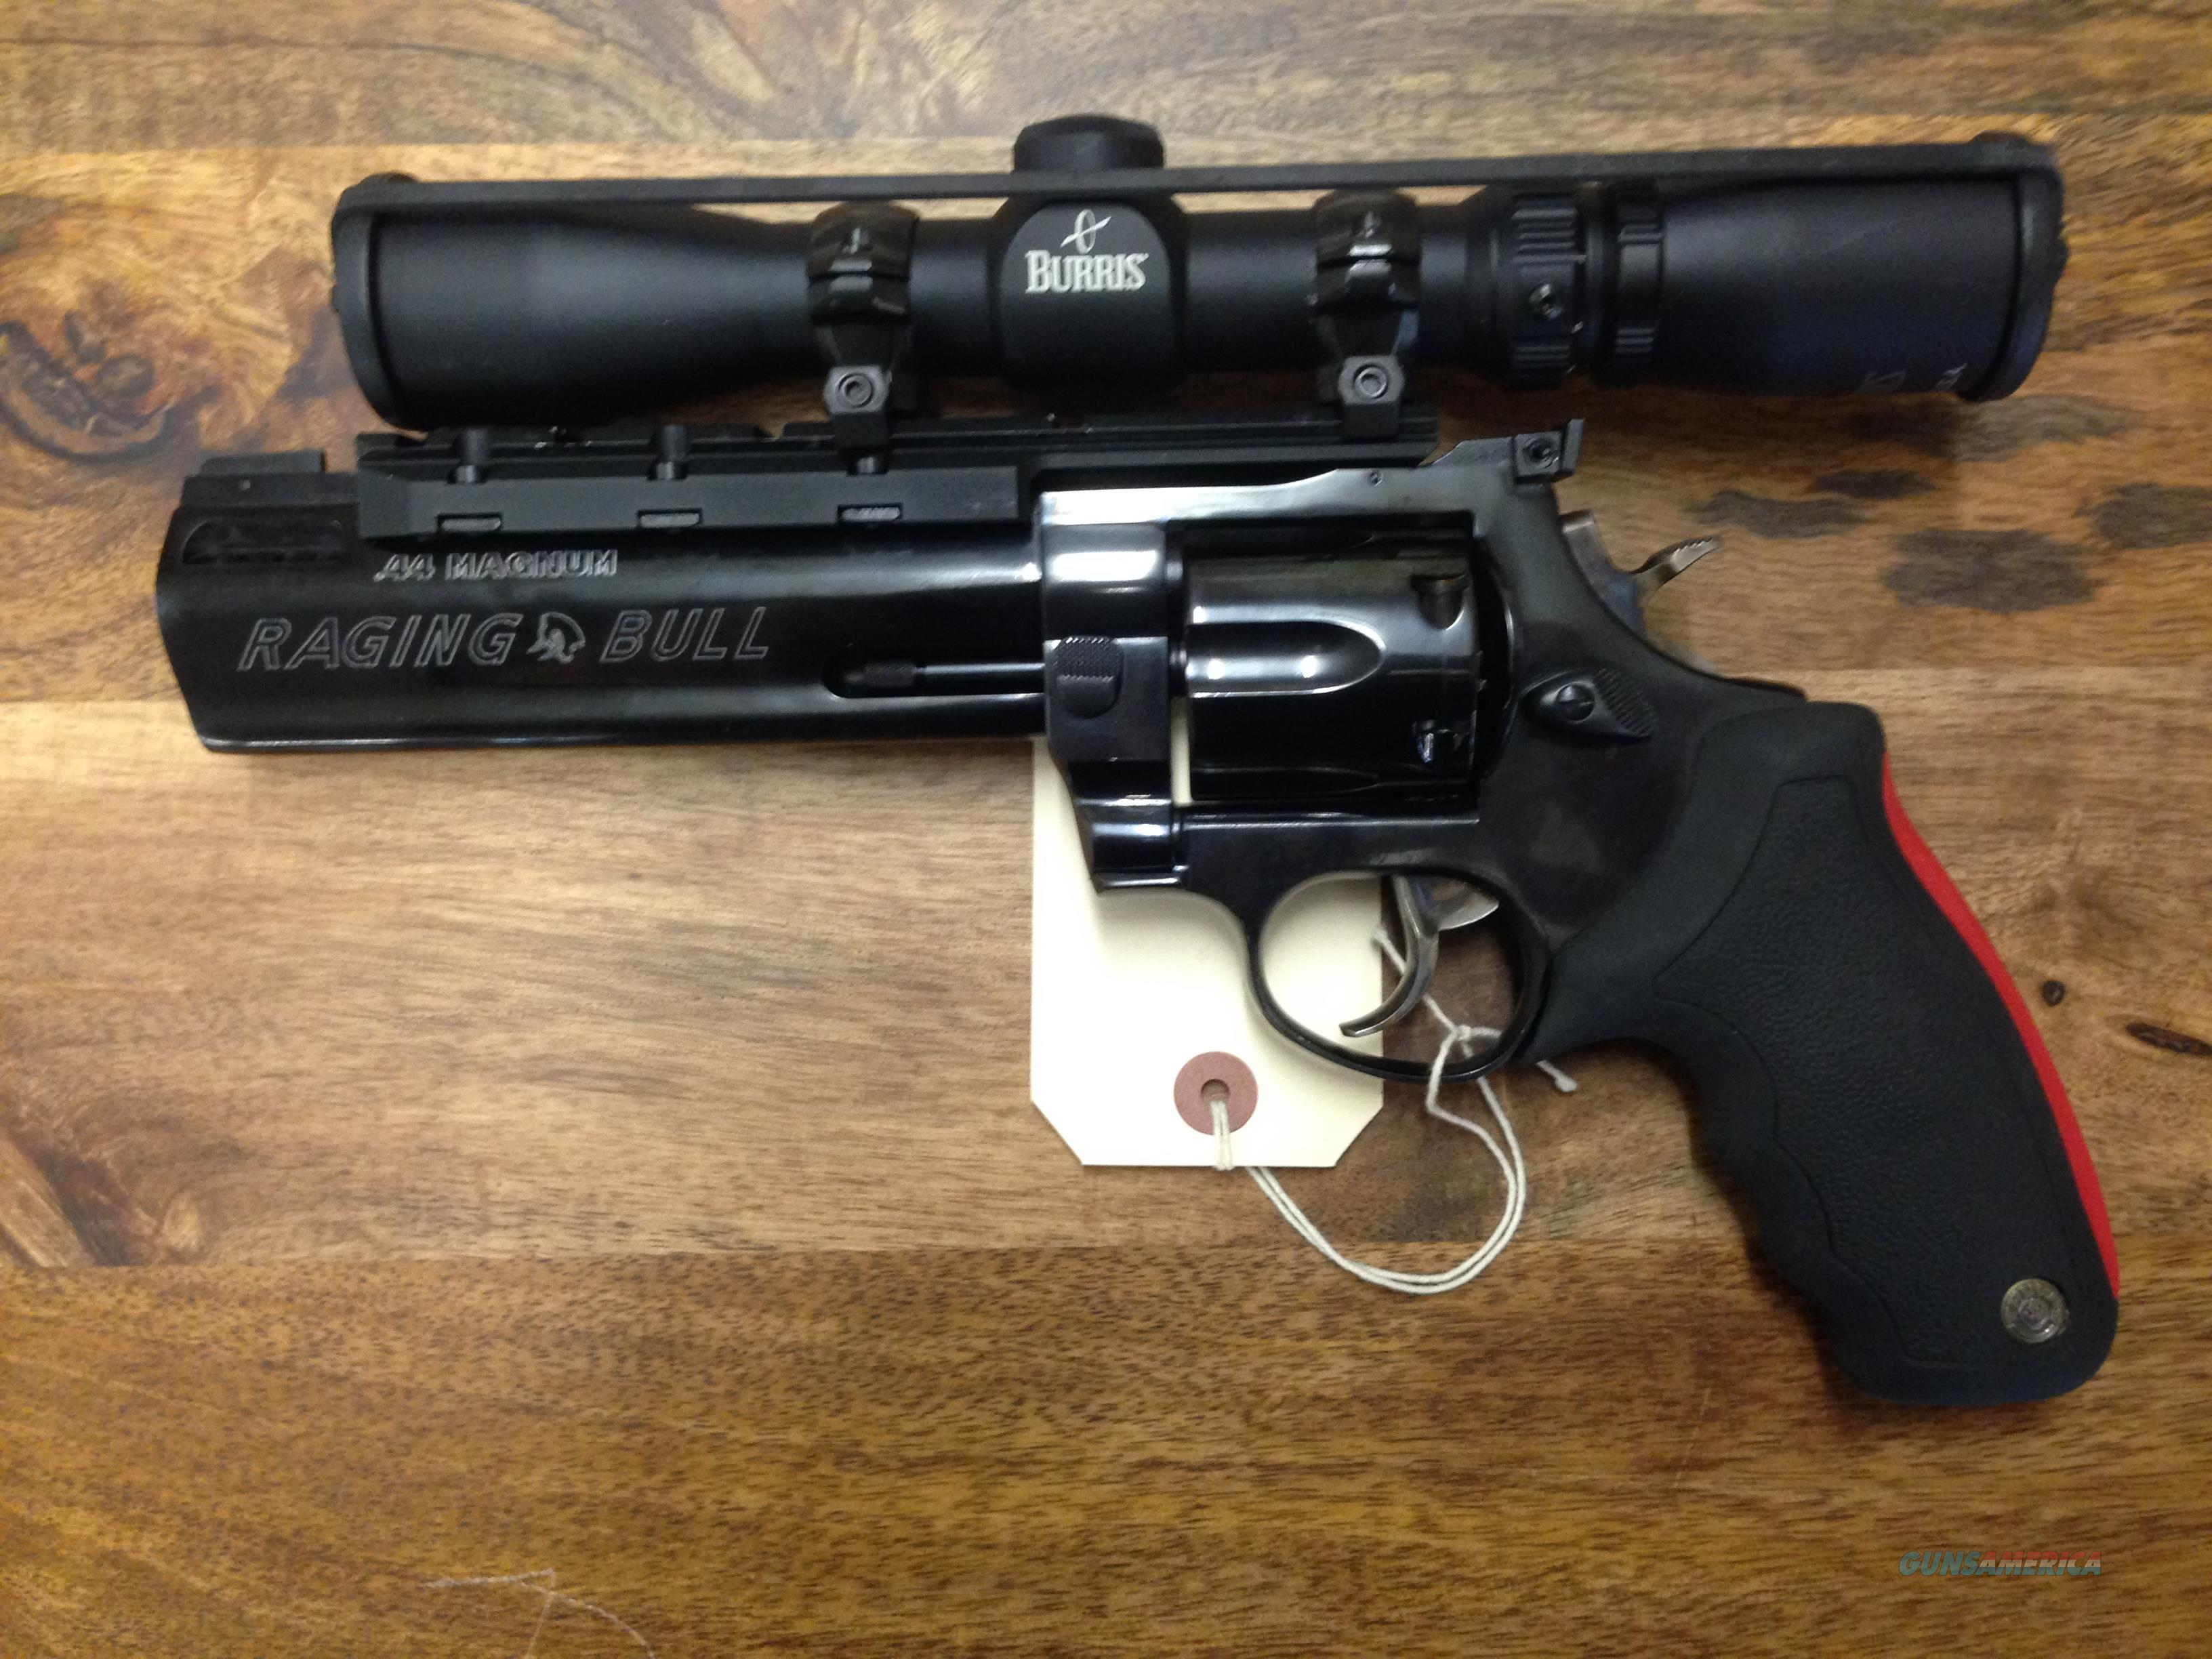 Taurus Raging Bull Scope Related Keywords & Suggestions - Taurus